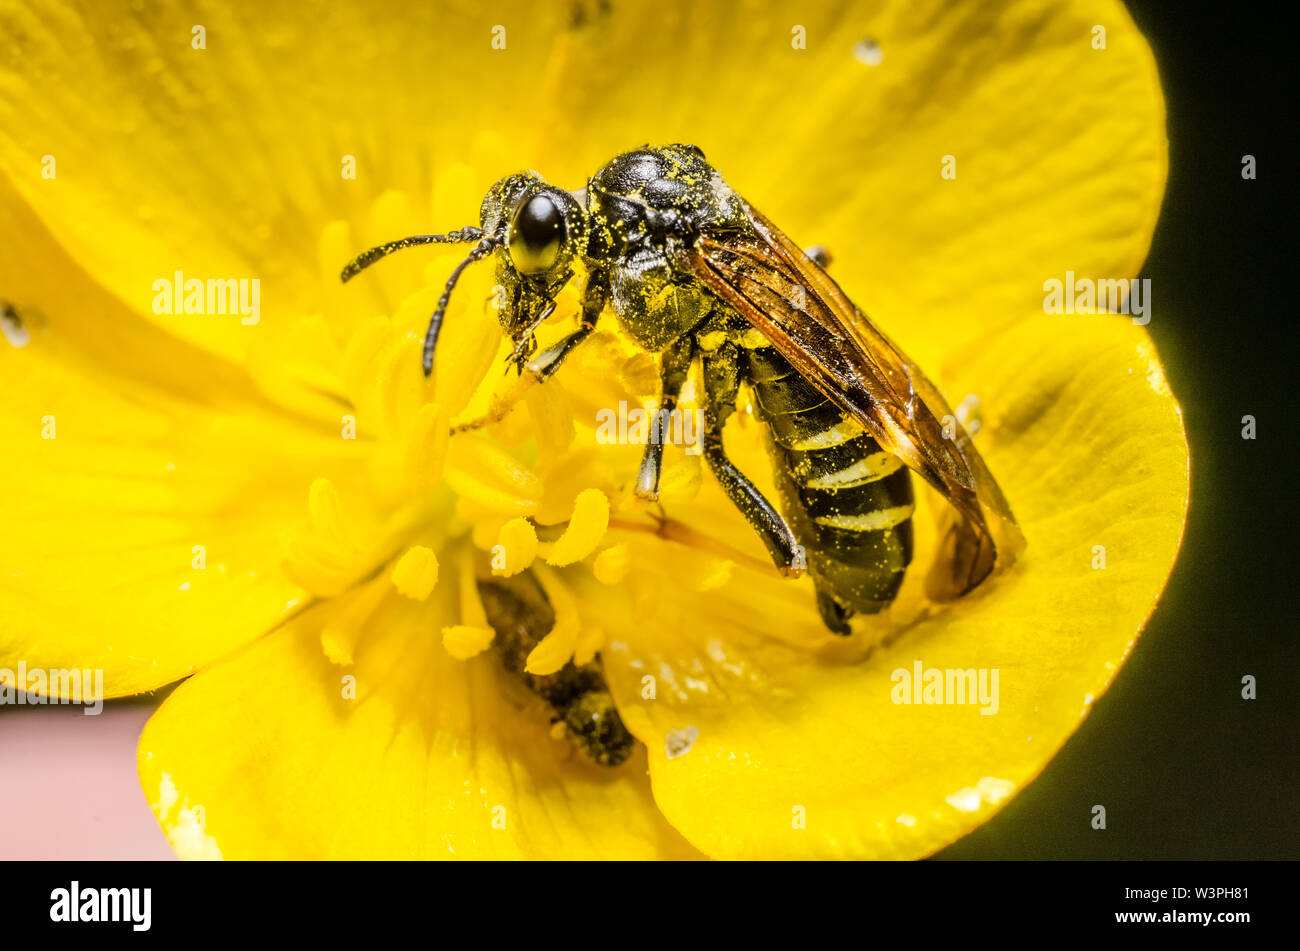 Hymenoptera, wasp insect in a yellow flower - Stock Image